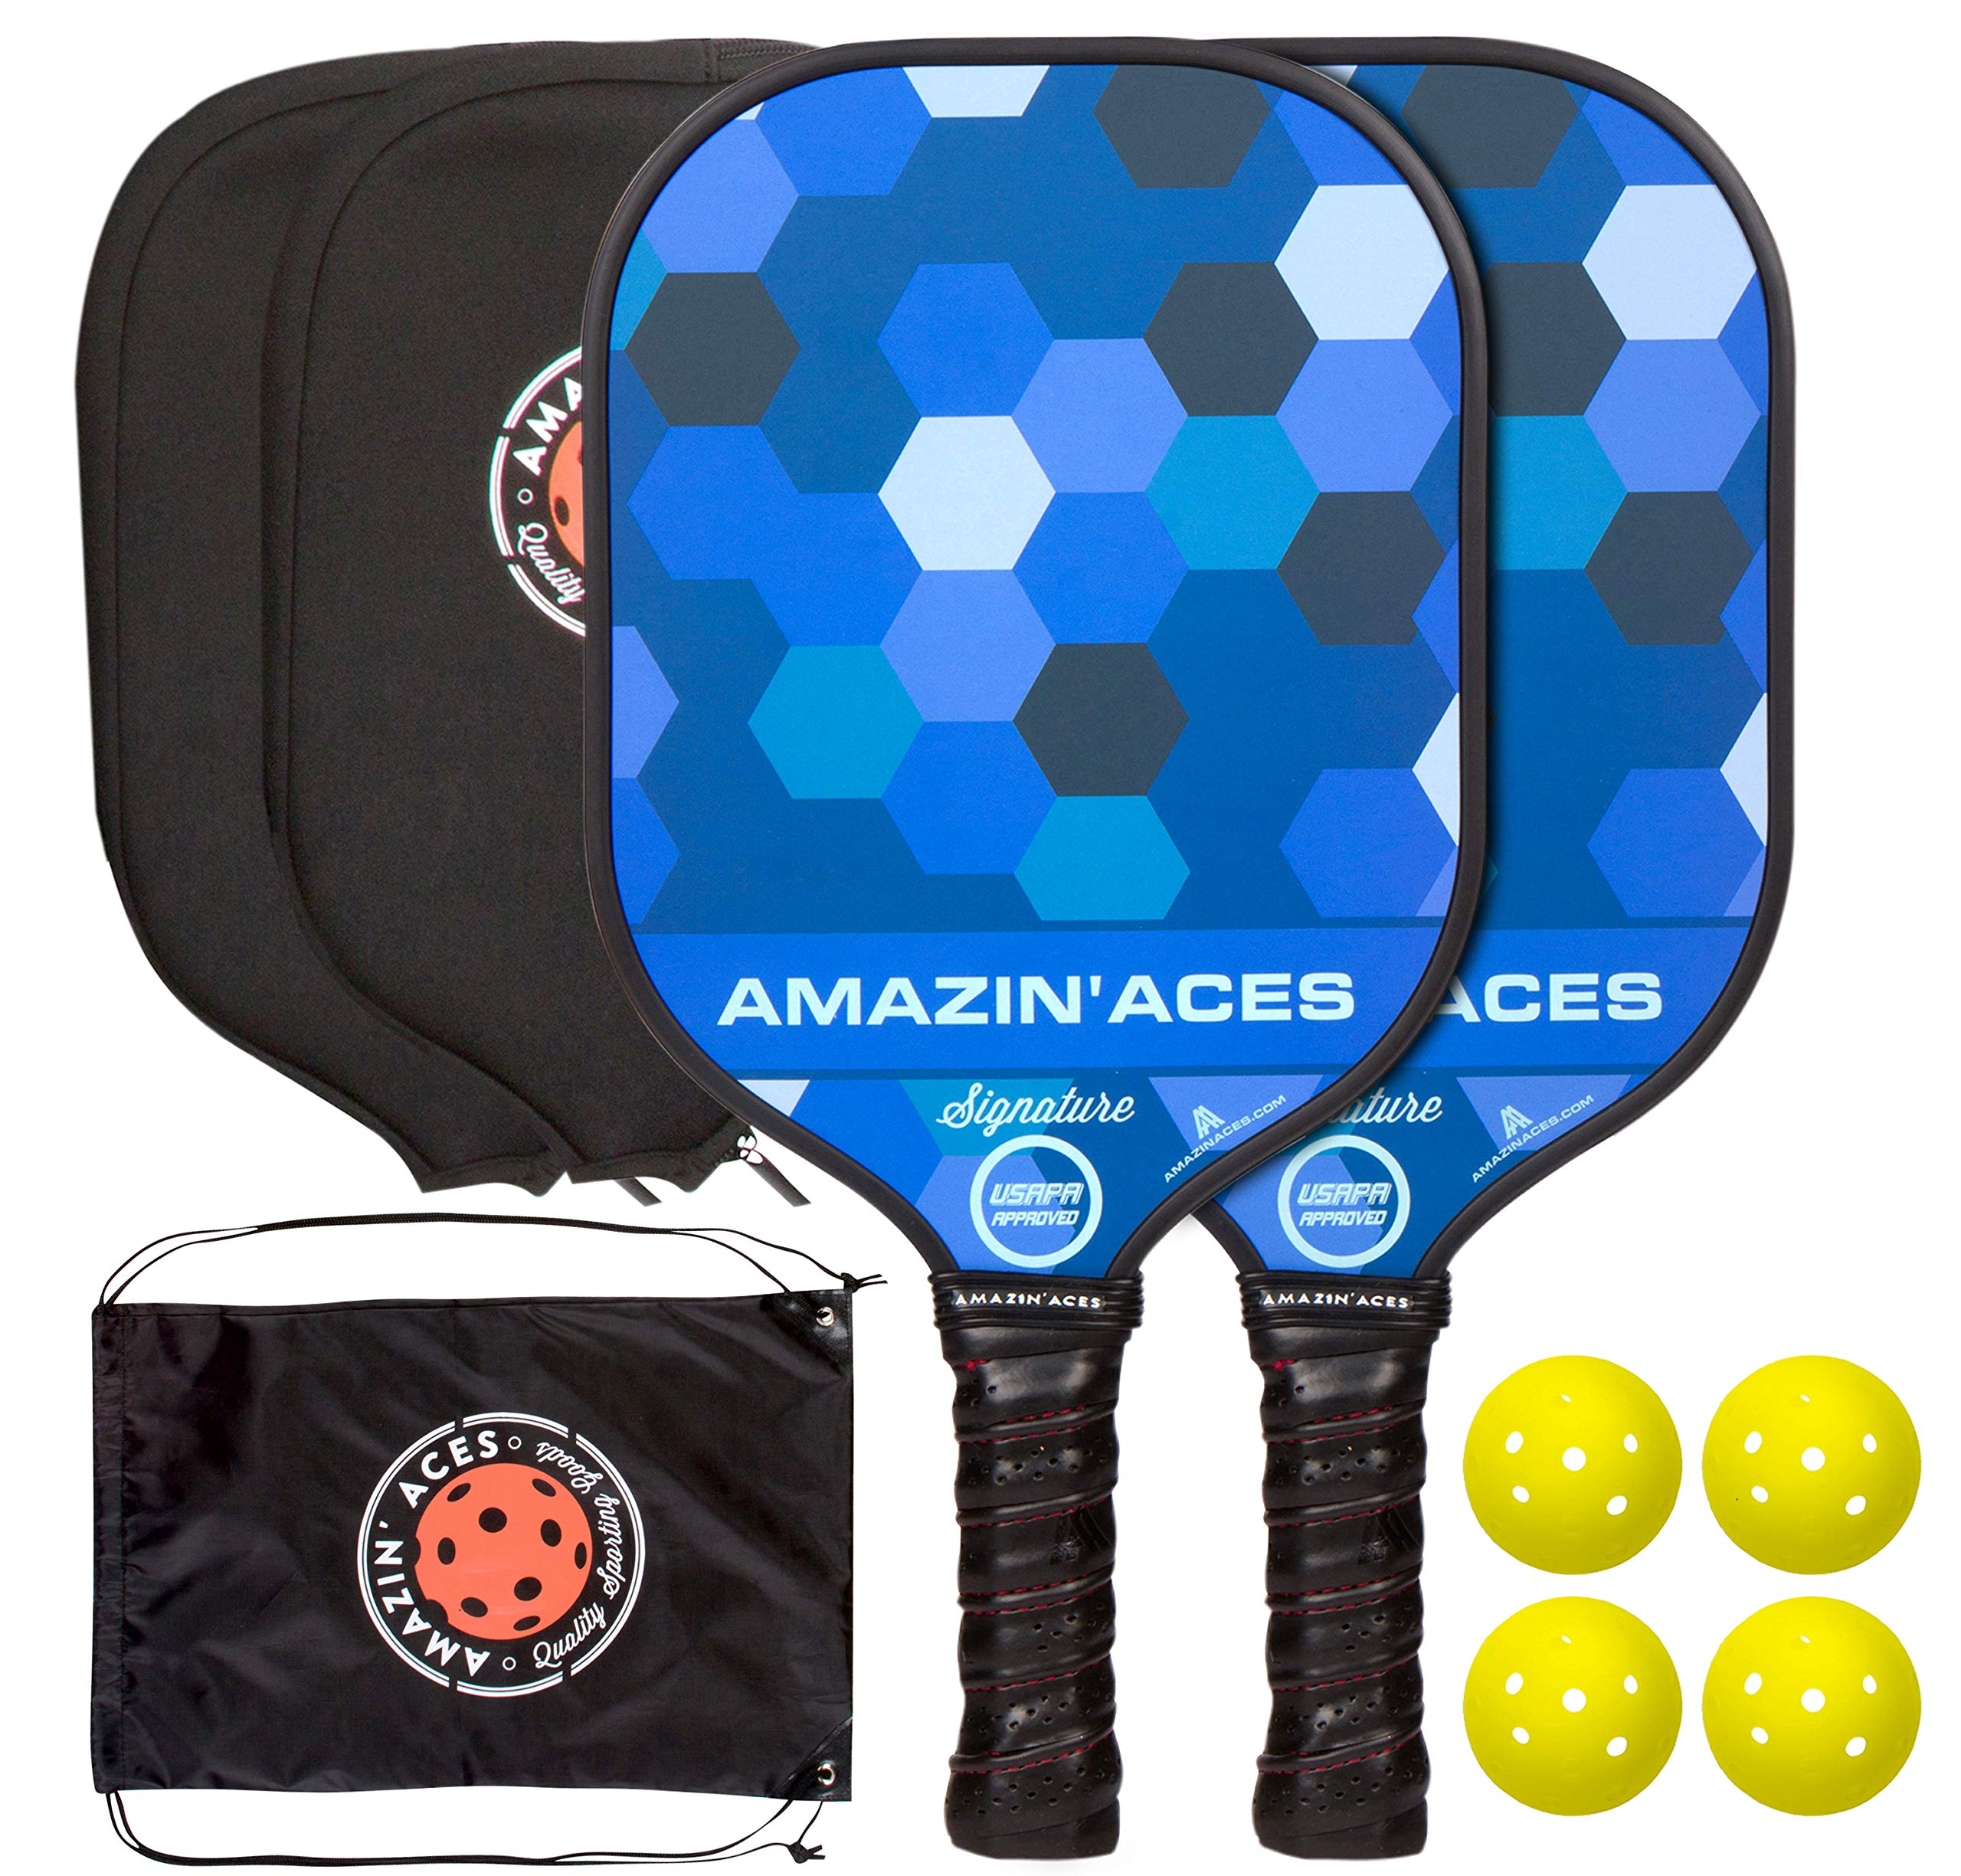 Amazin' Aces Signature Pickleball Paddle | USAPA Approved | Graphite Face & Polymer Core | Premium Grip | Paddles Available as Single or Set | Set Includes Balls & Bag | Includes Racket Case & eBook